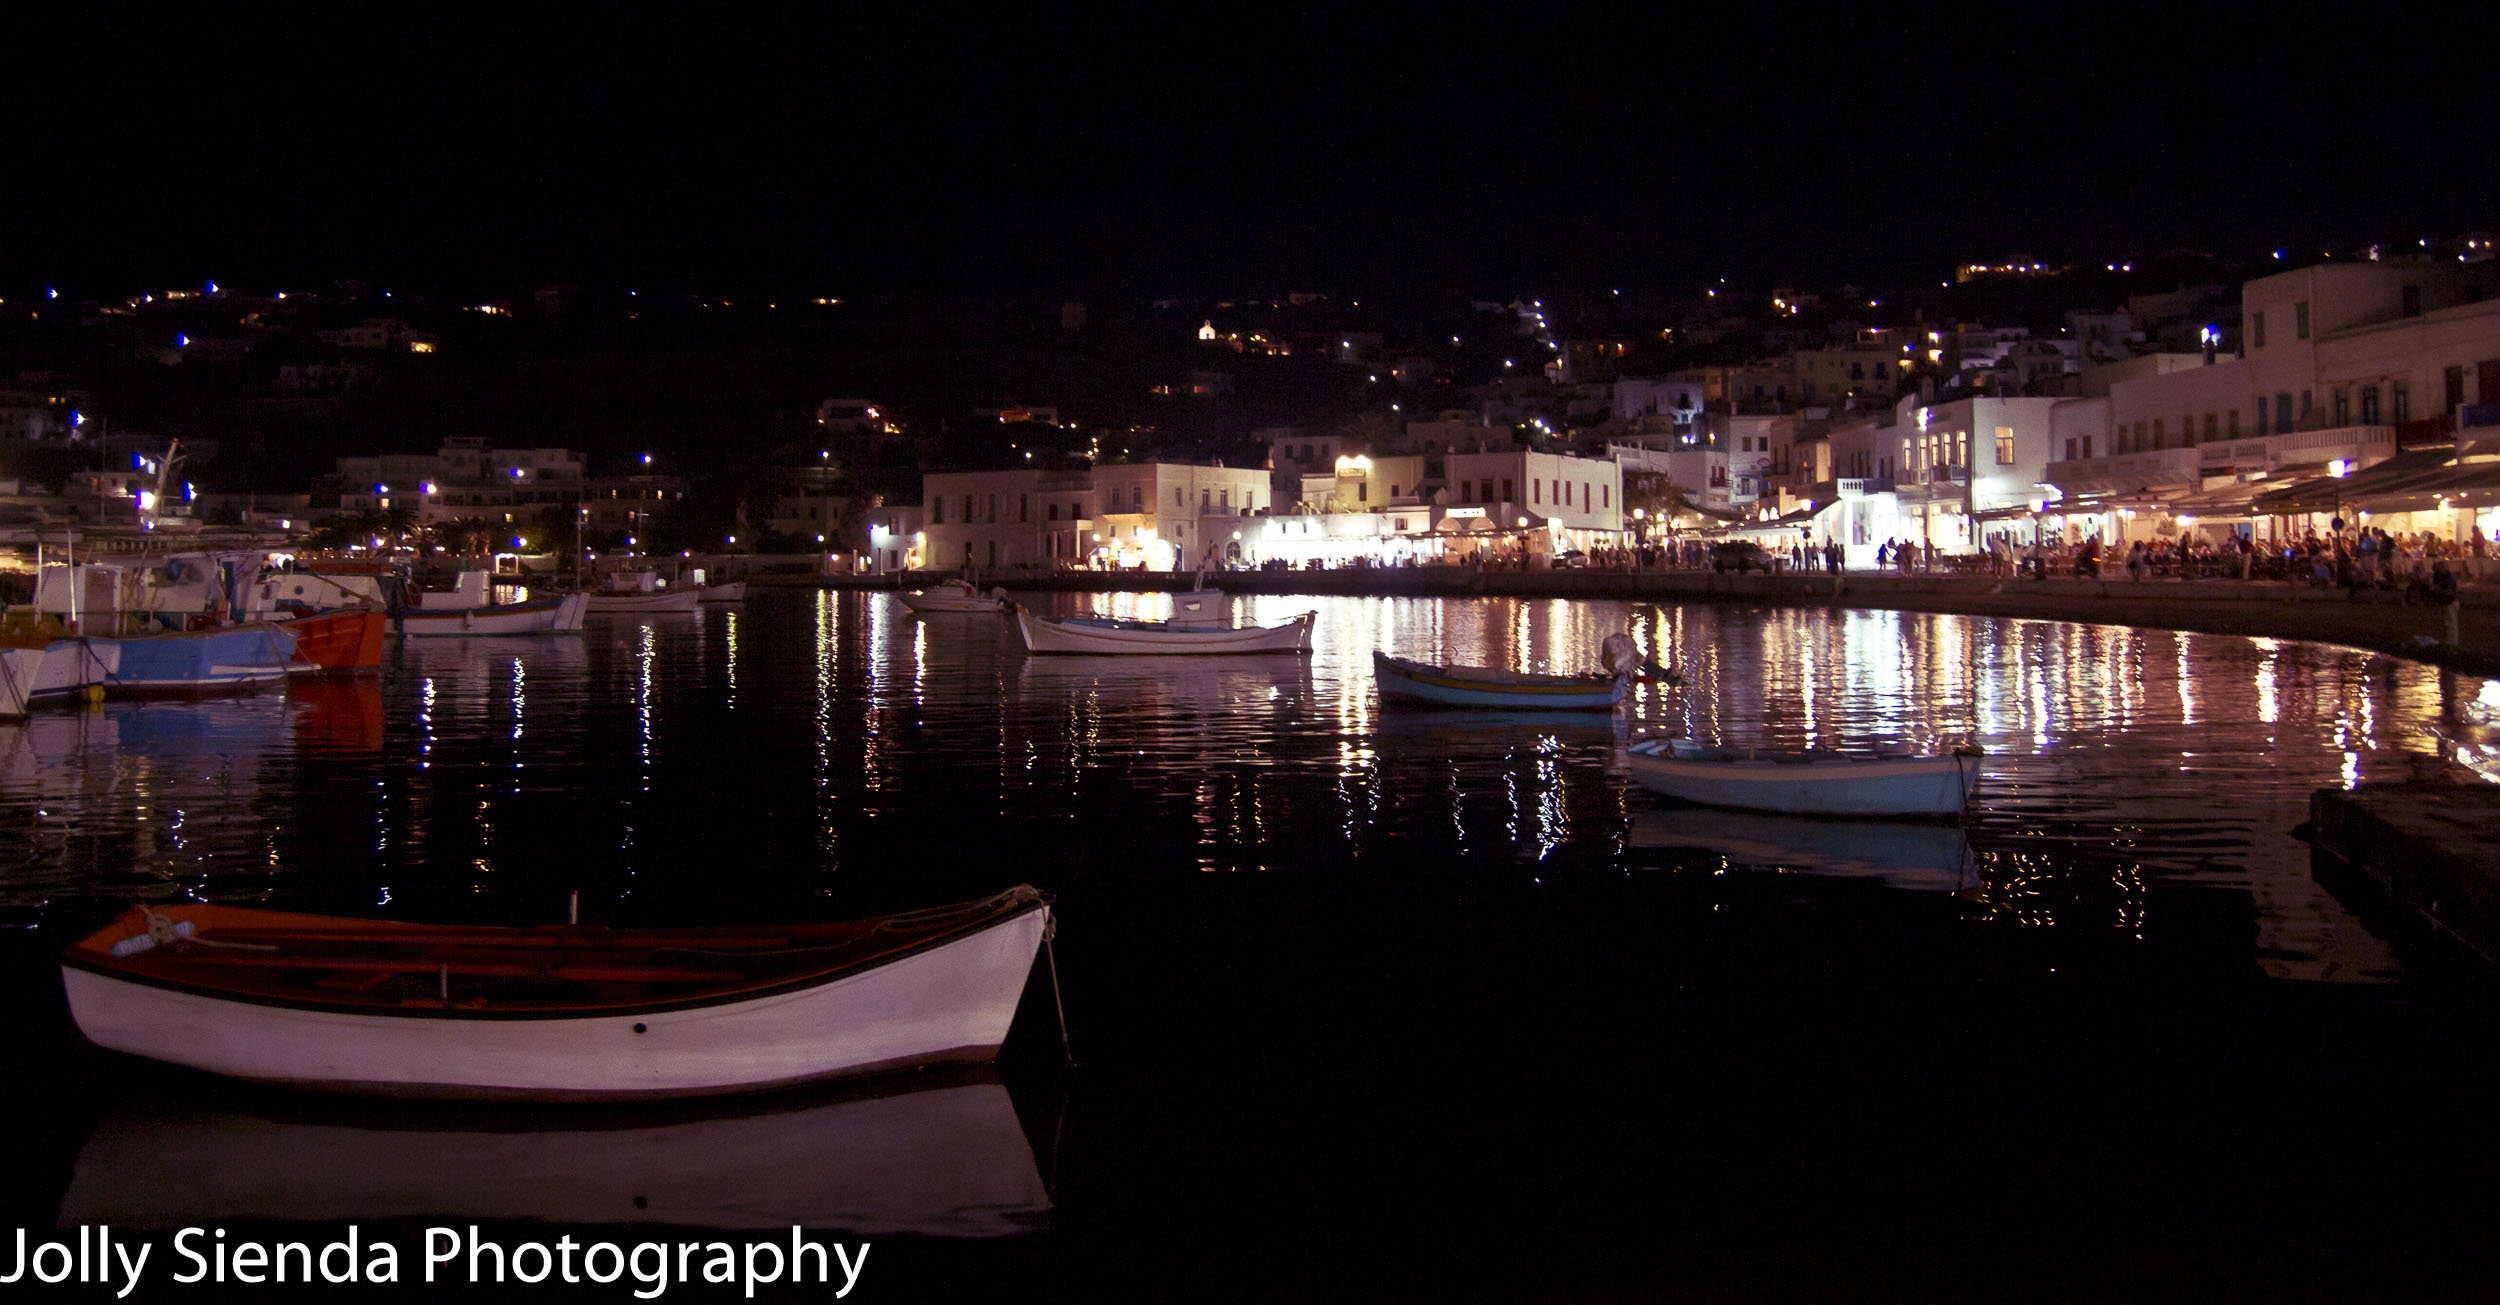 Boats and the town of Mykonos lit up at night